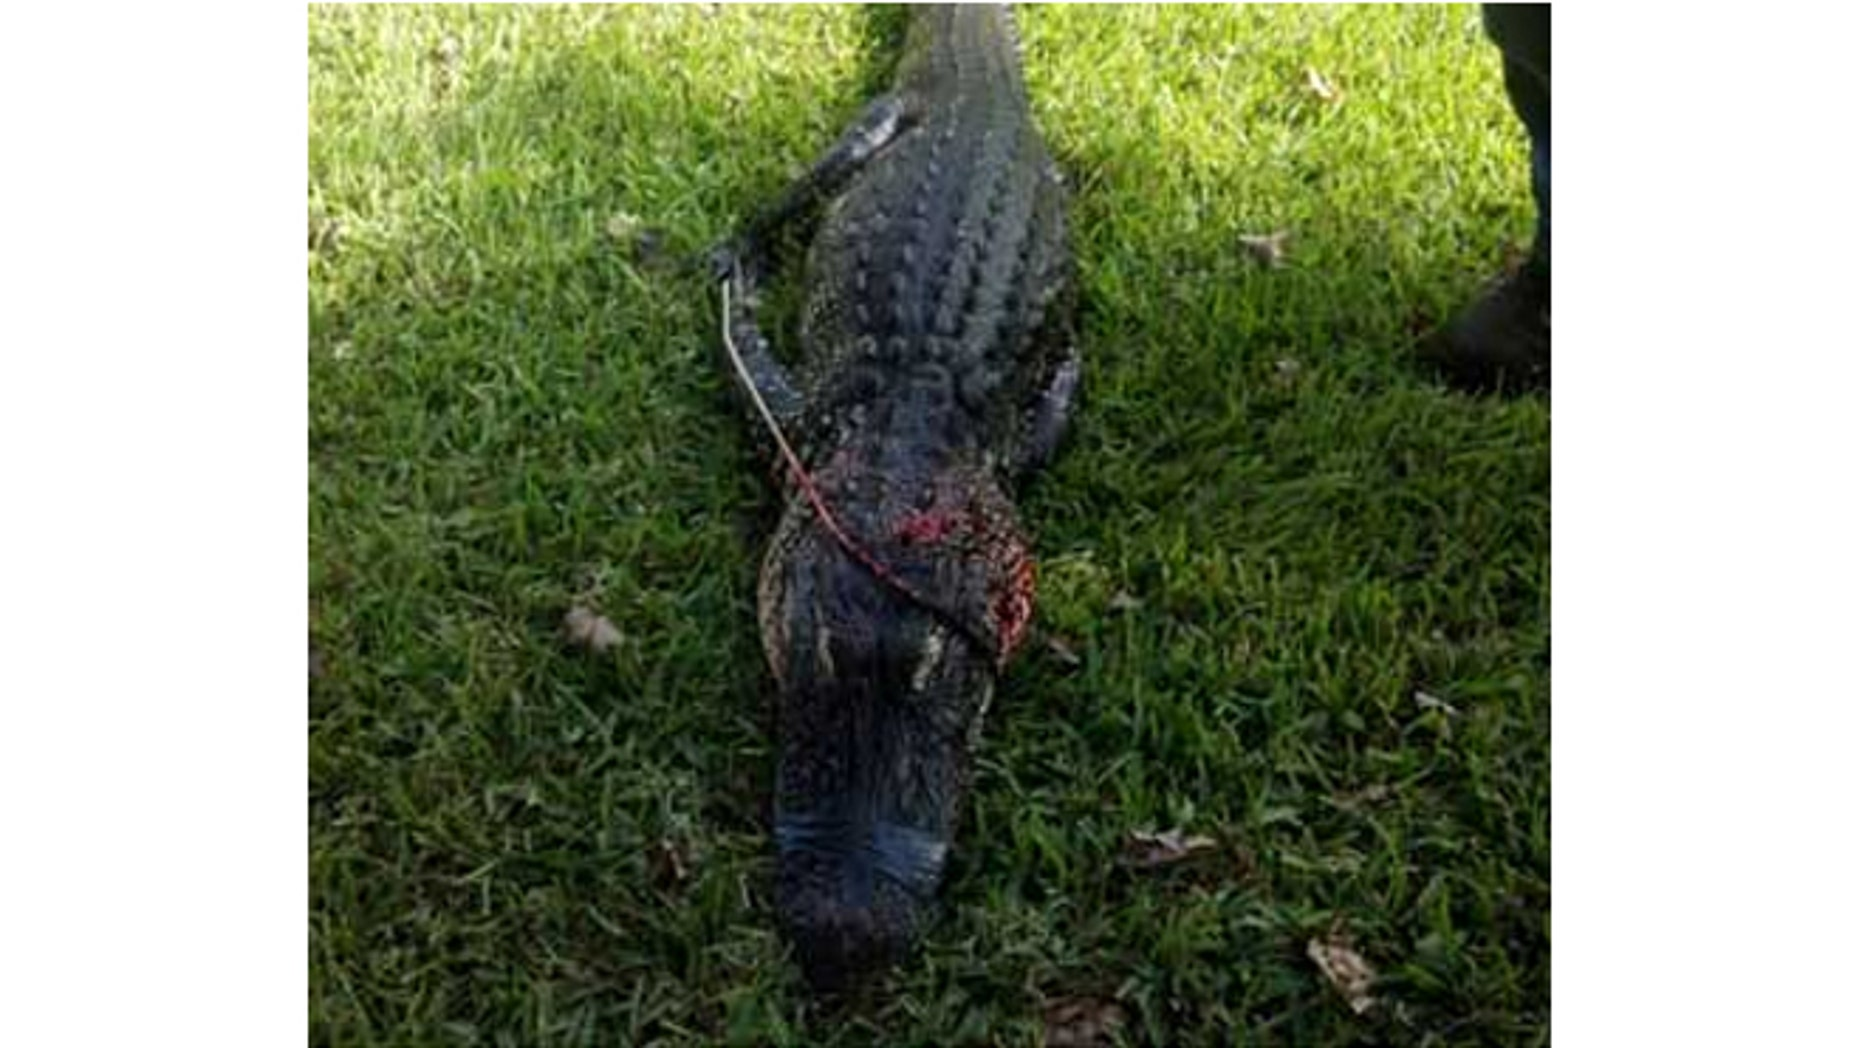 Authorities tracked and killed an alligator they say took the arm of an elderly woman.